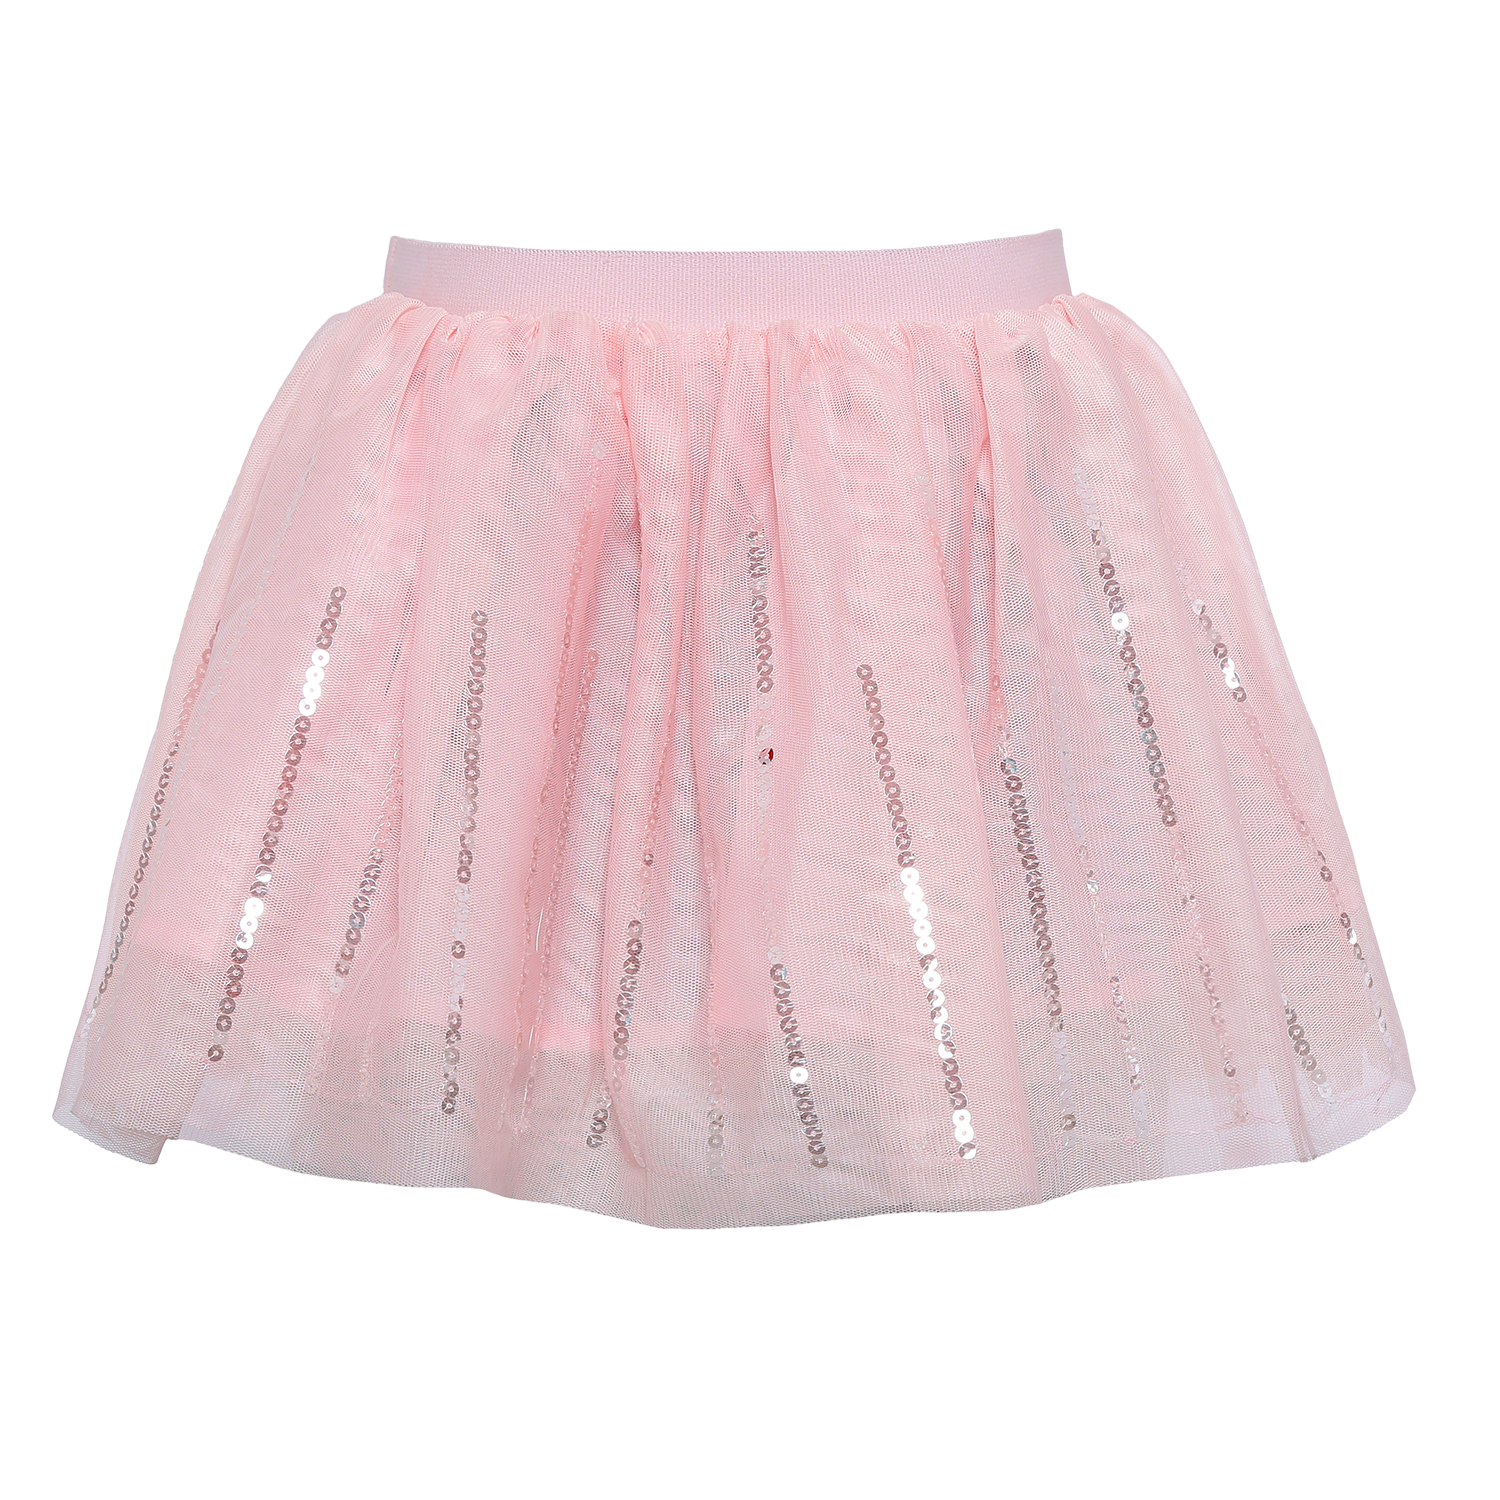 Toddler Girl 'Ahoy' Skirt